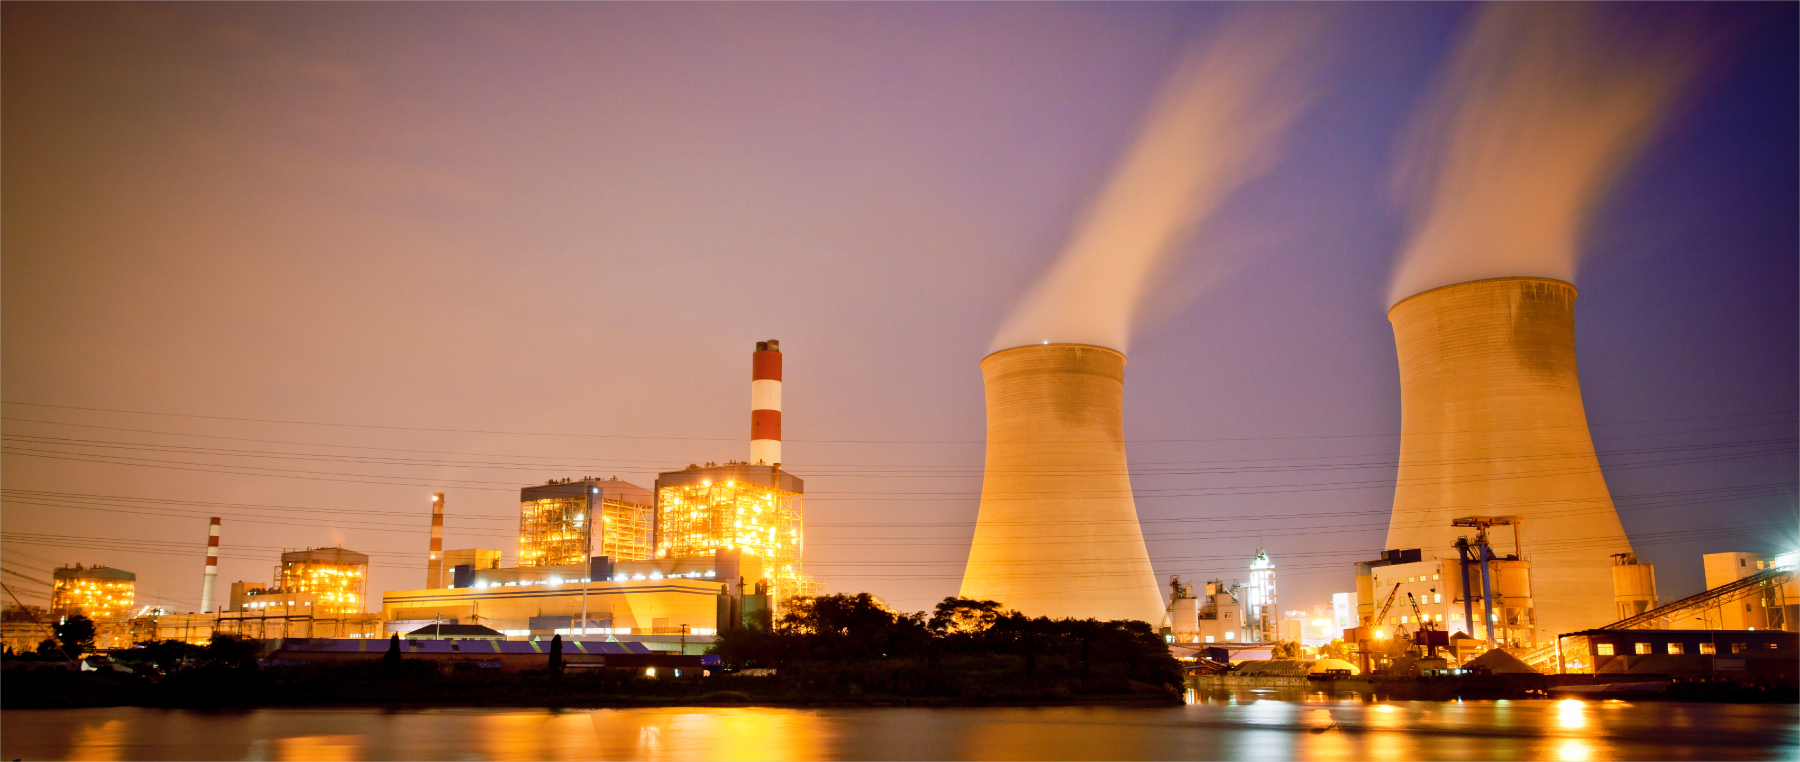 Compressed Air In Thermal Power Plants